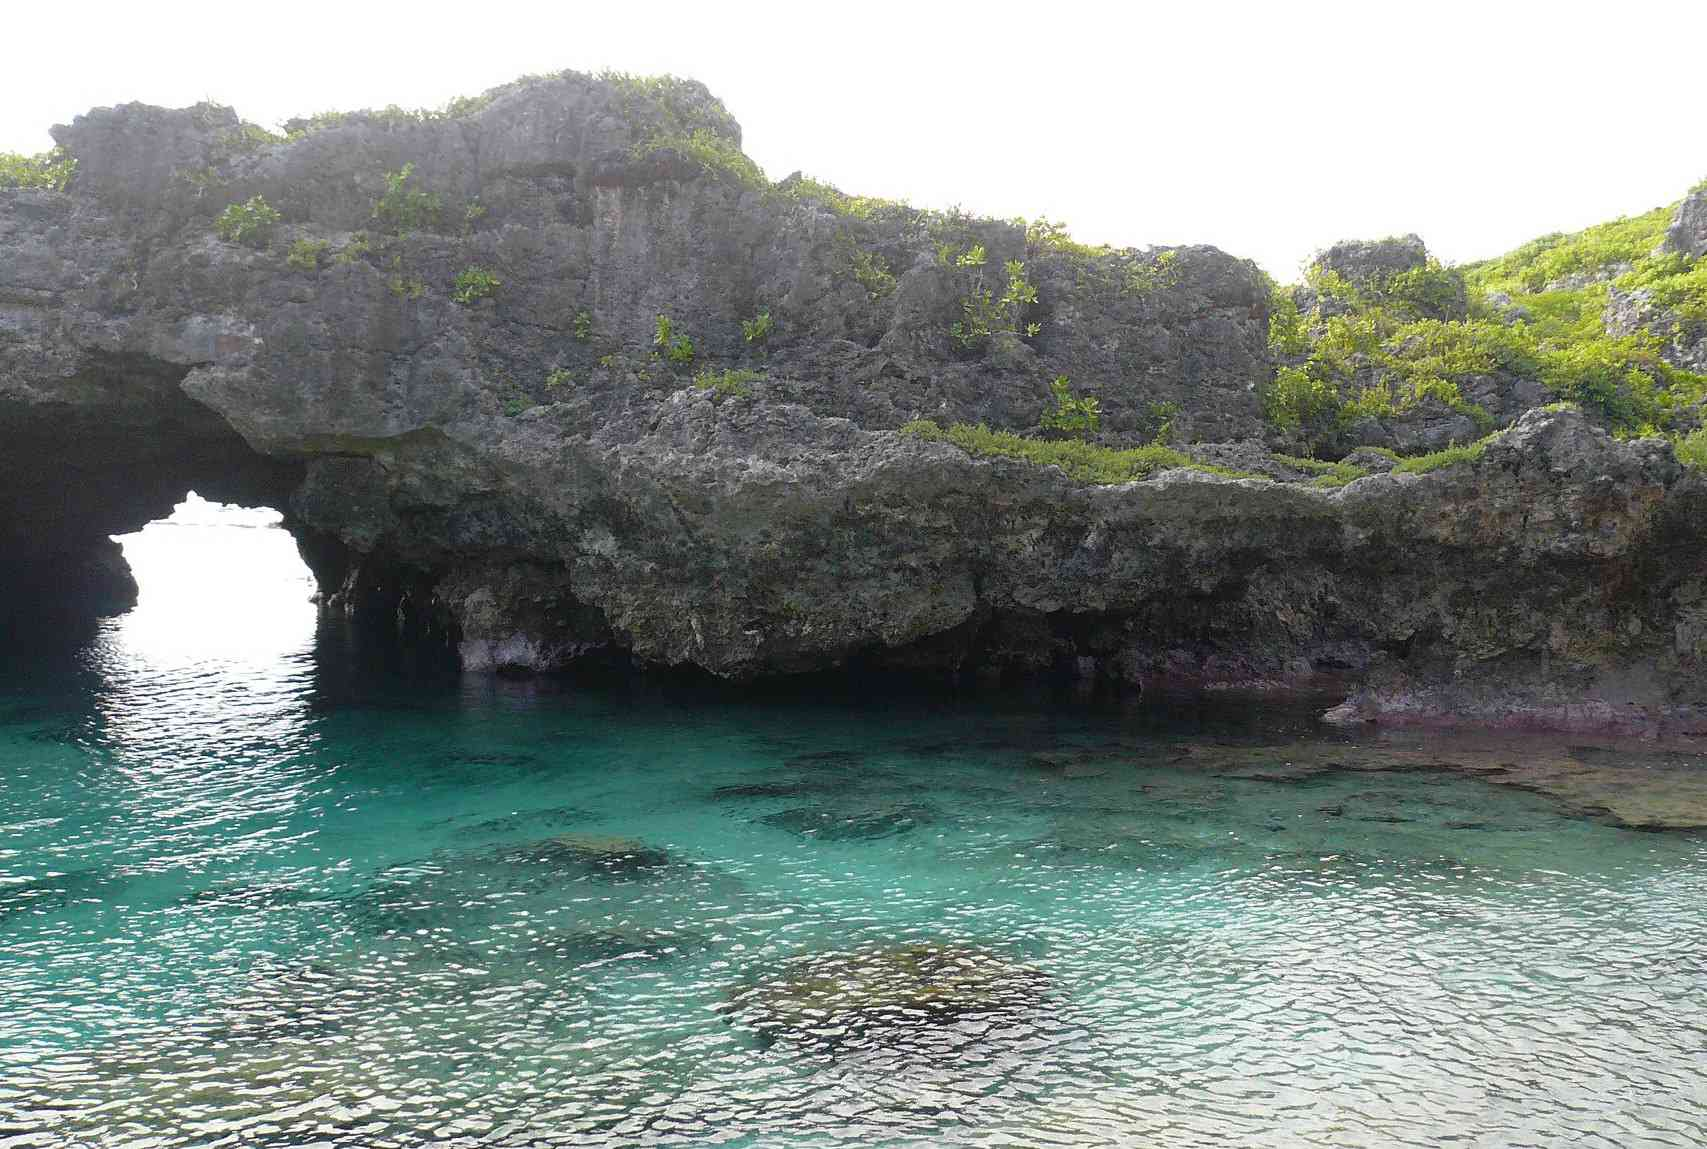 An arched rock formation extends over clear, tropical waters